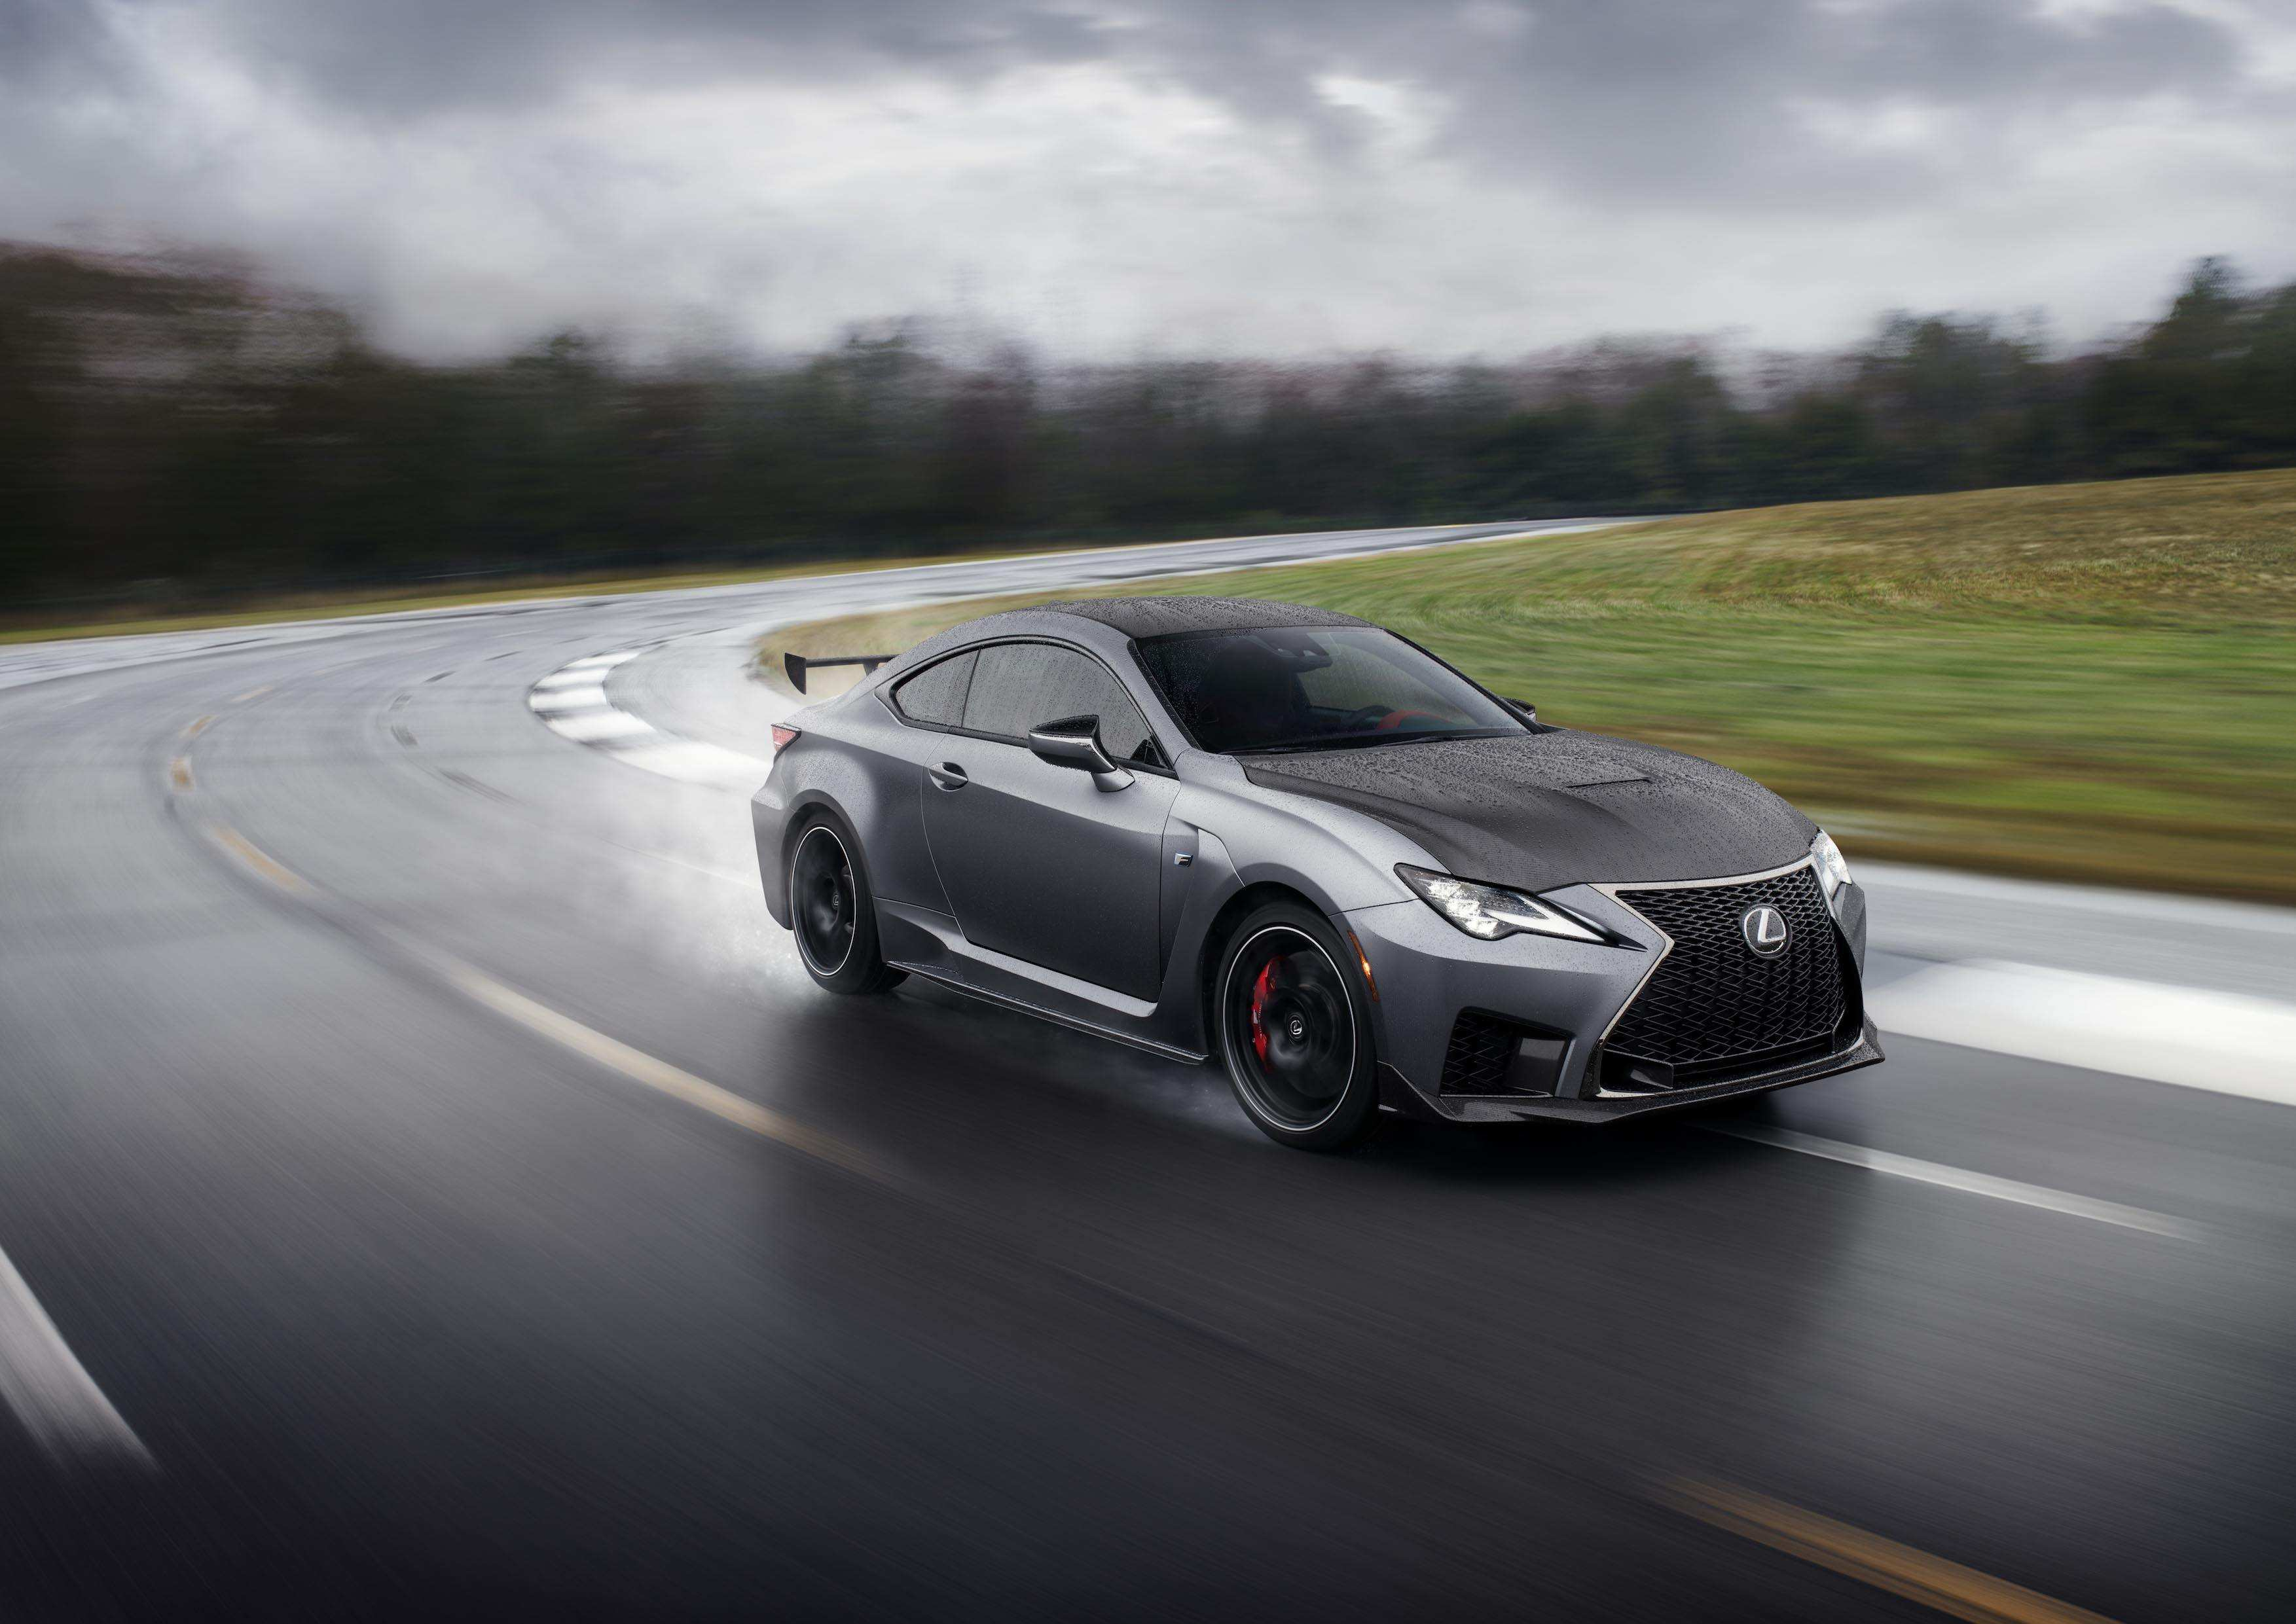 83 The Lexus Design Award 2020 New Model And Performance